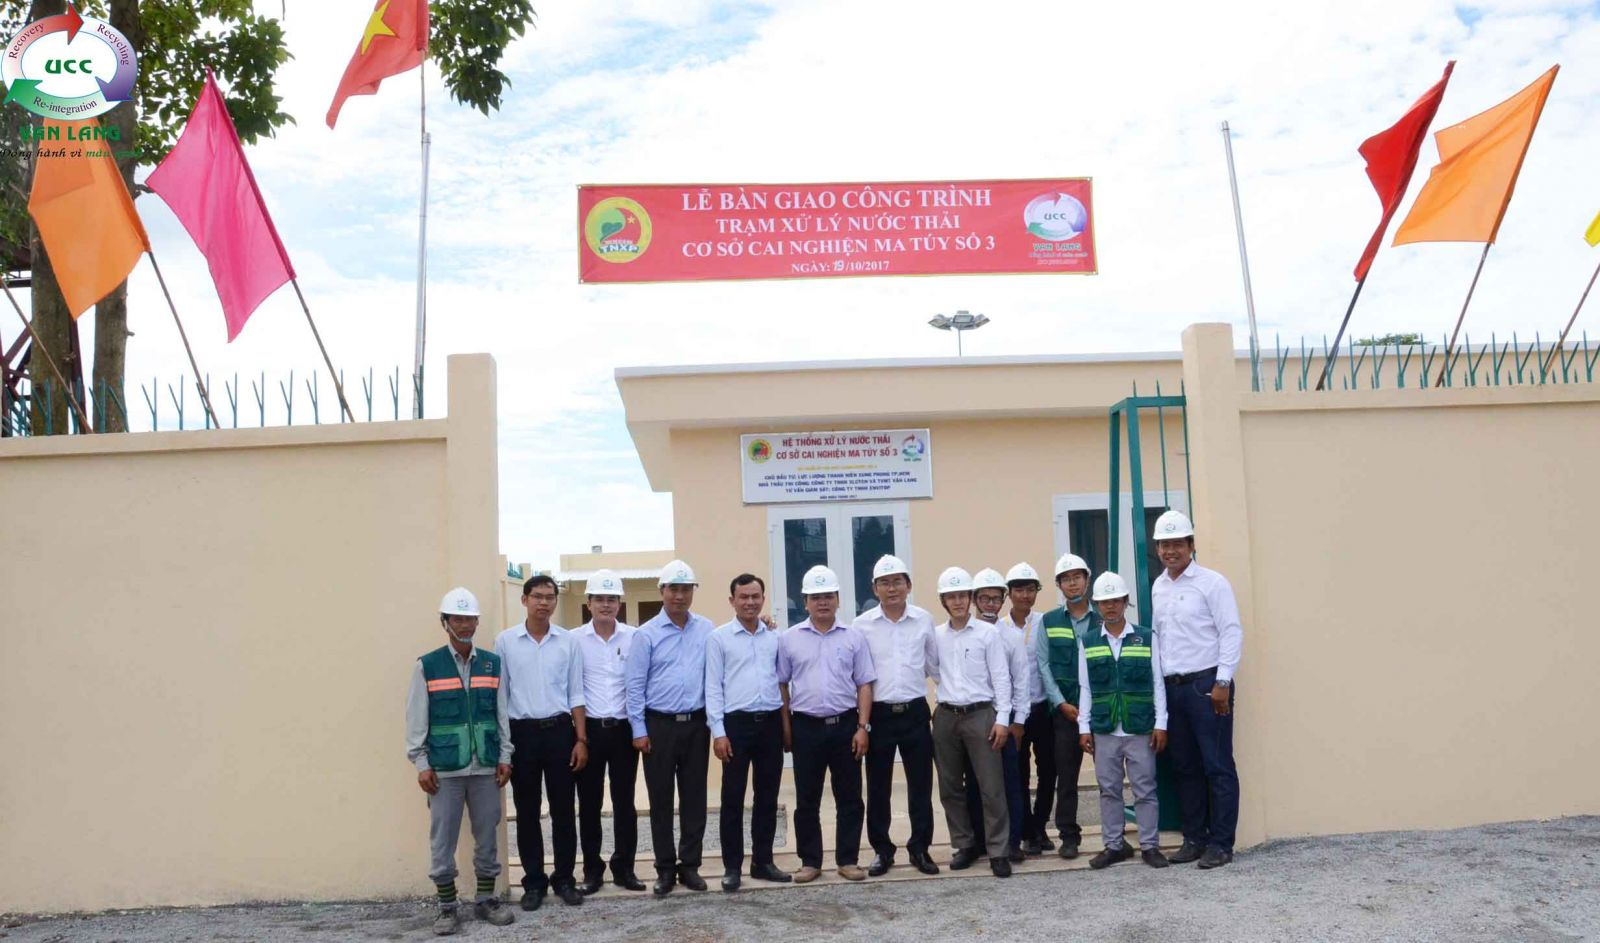 Hand-over Ceremony: The Waste Water Treatment Plant Of Detoxification Center No.3 (Binh Duong province)